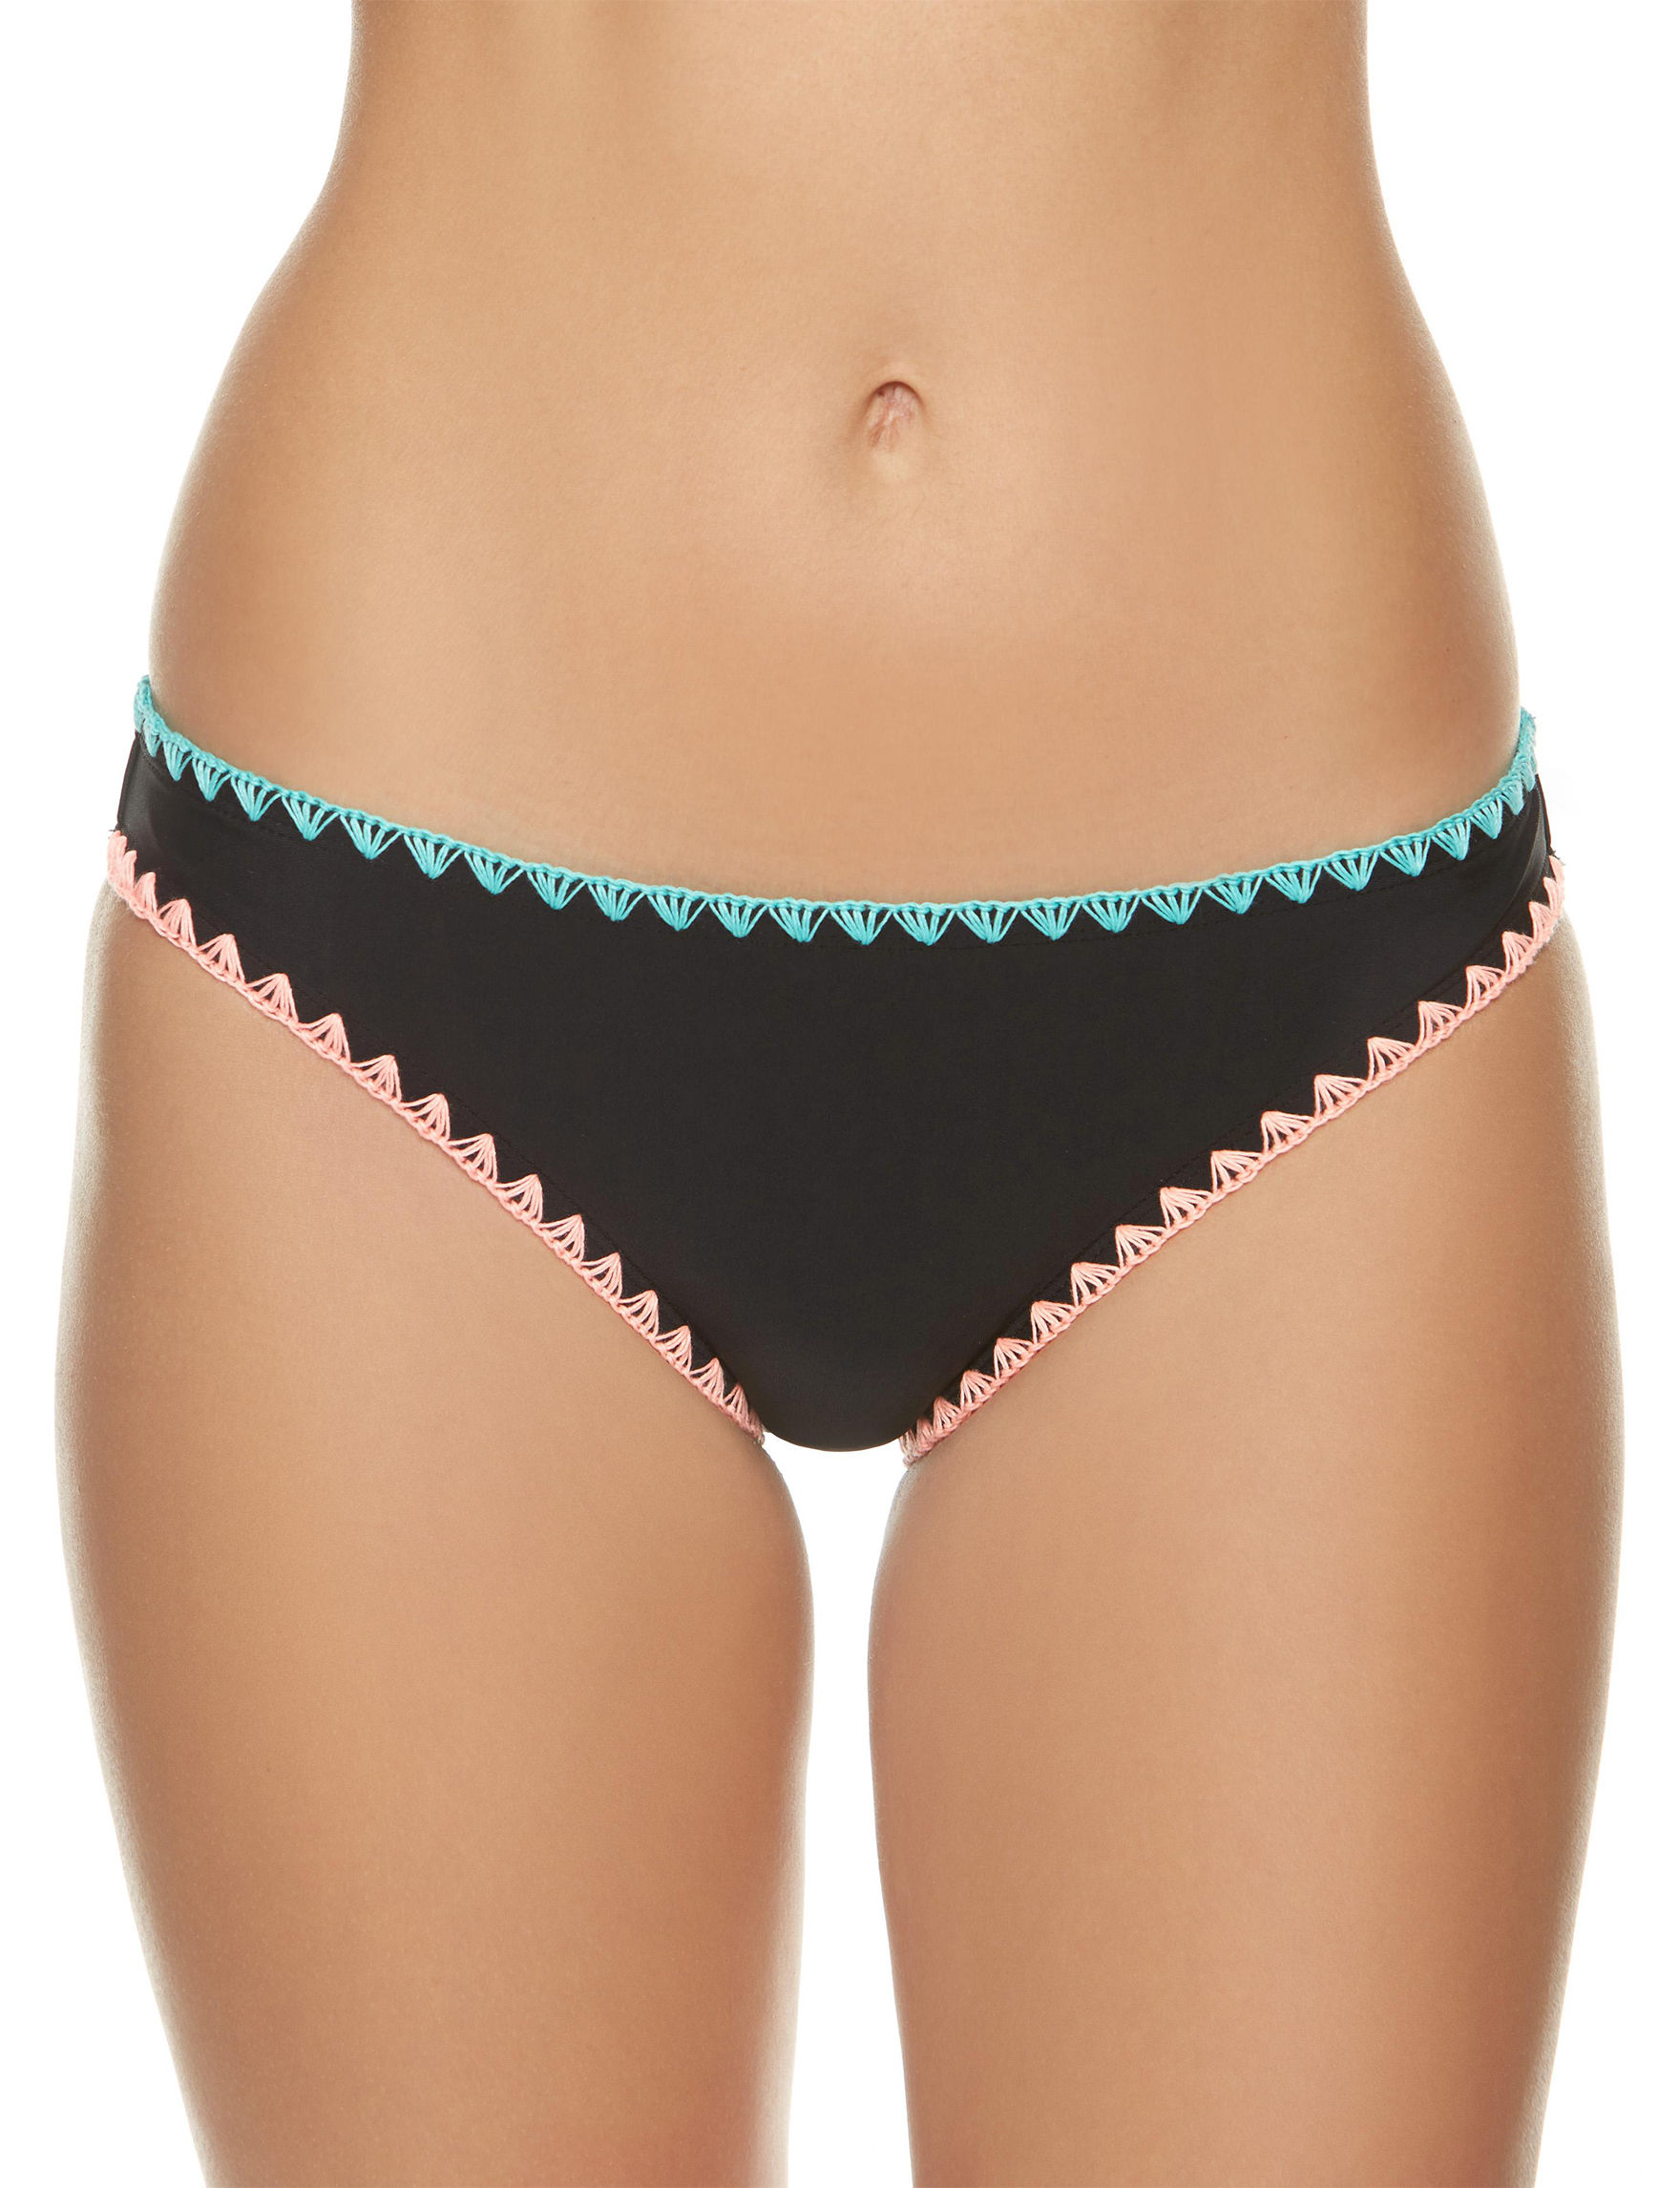 Polka Dot Black Swimsuit Bottoms Hipster